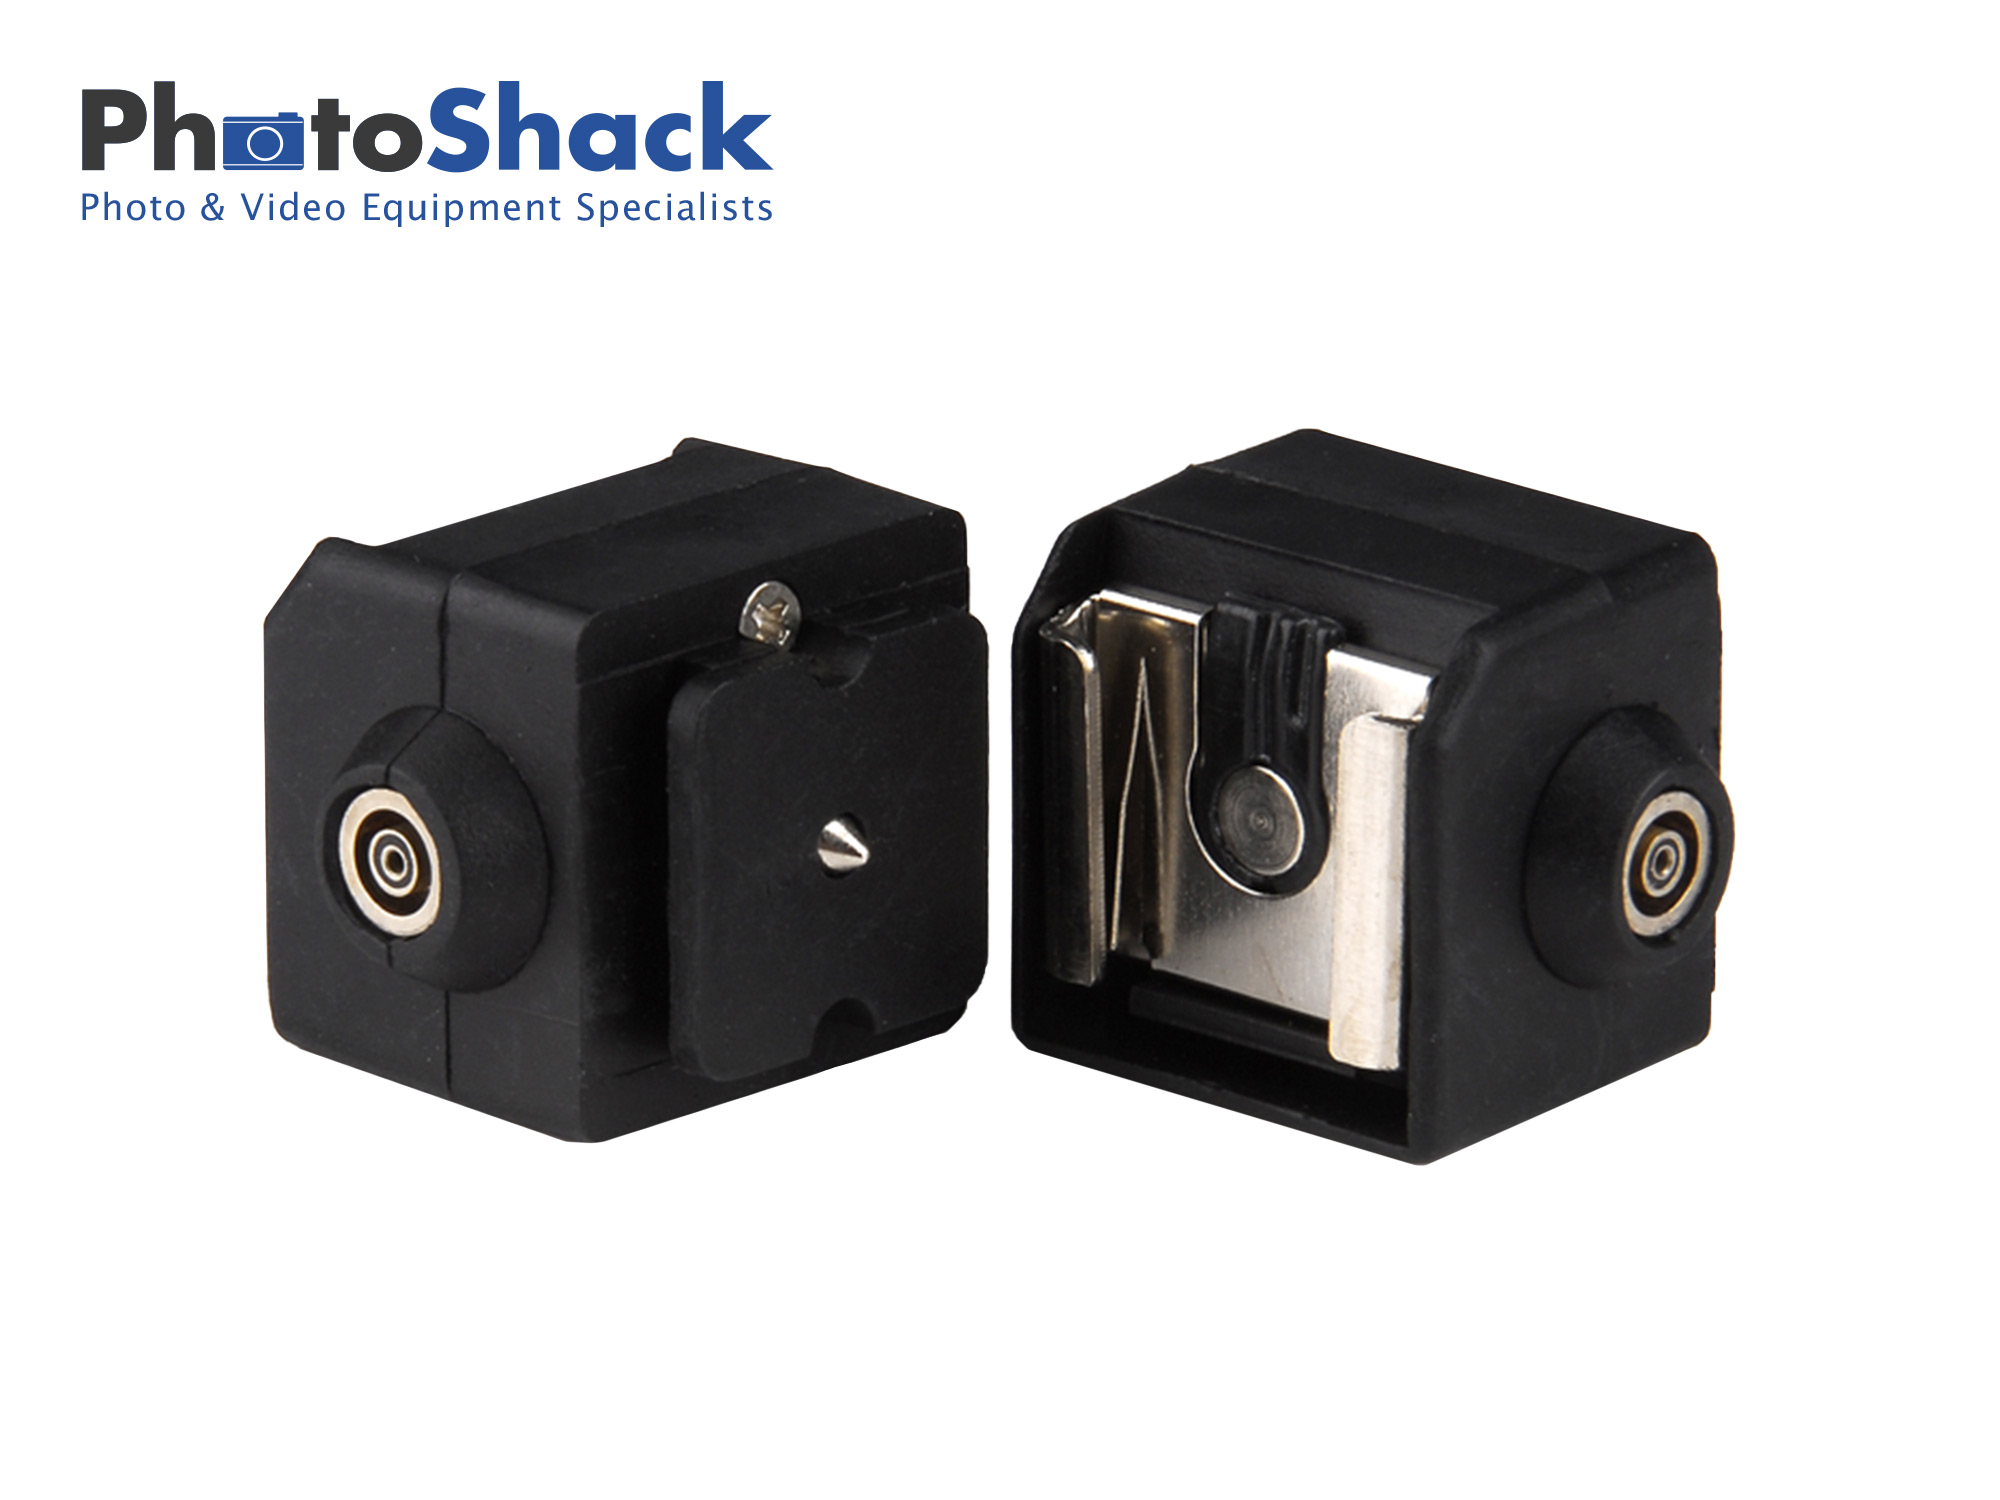 Hotshoe Adapter with PC sync port - HotshoePSS02